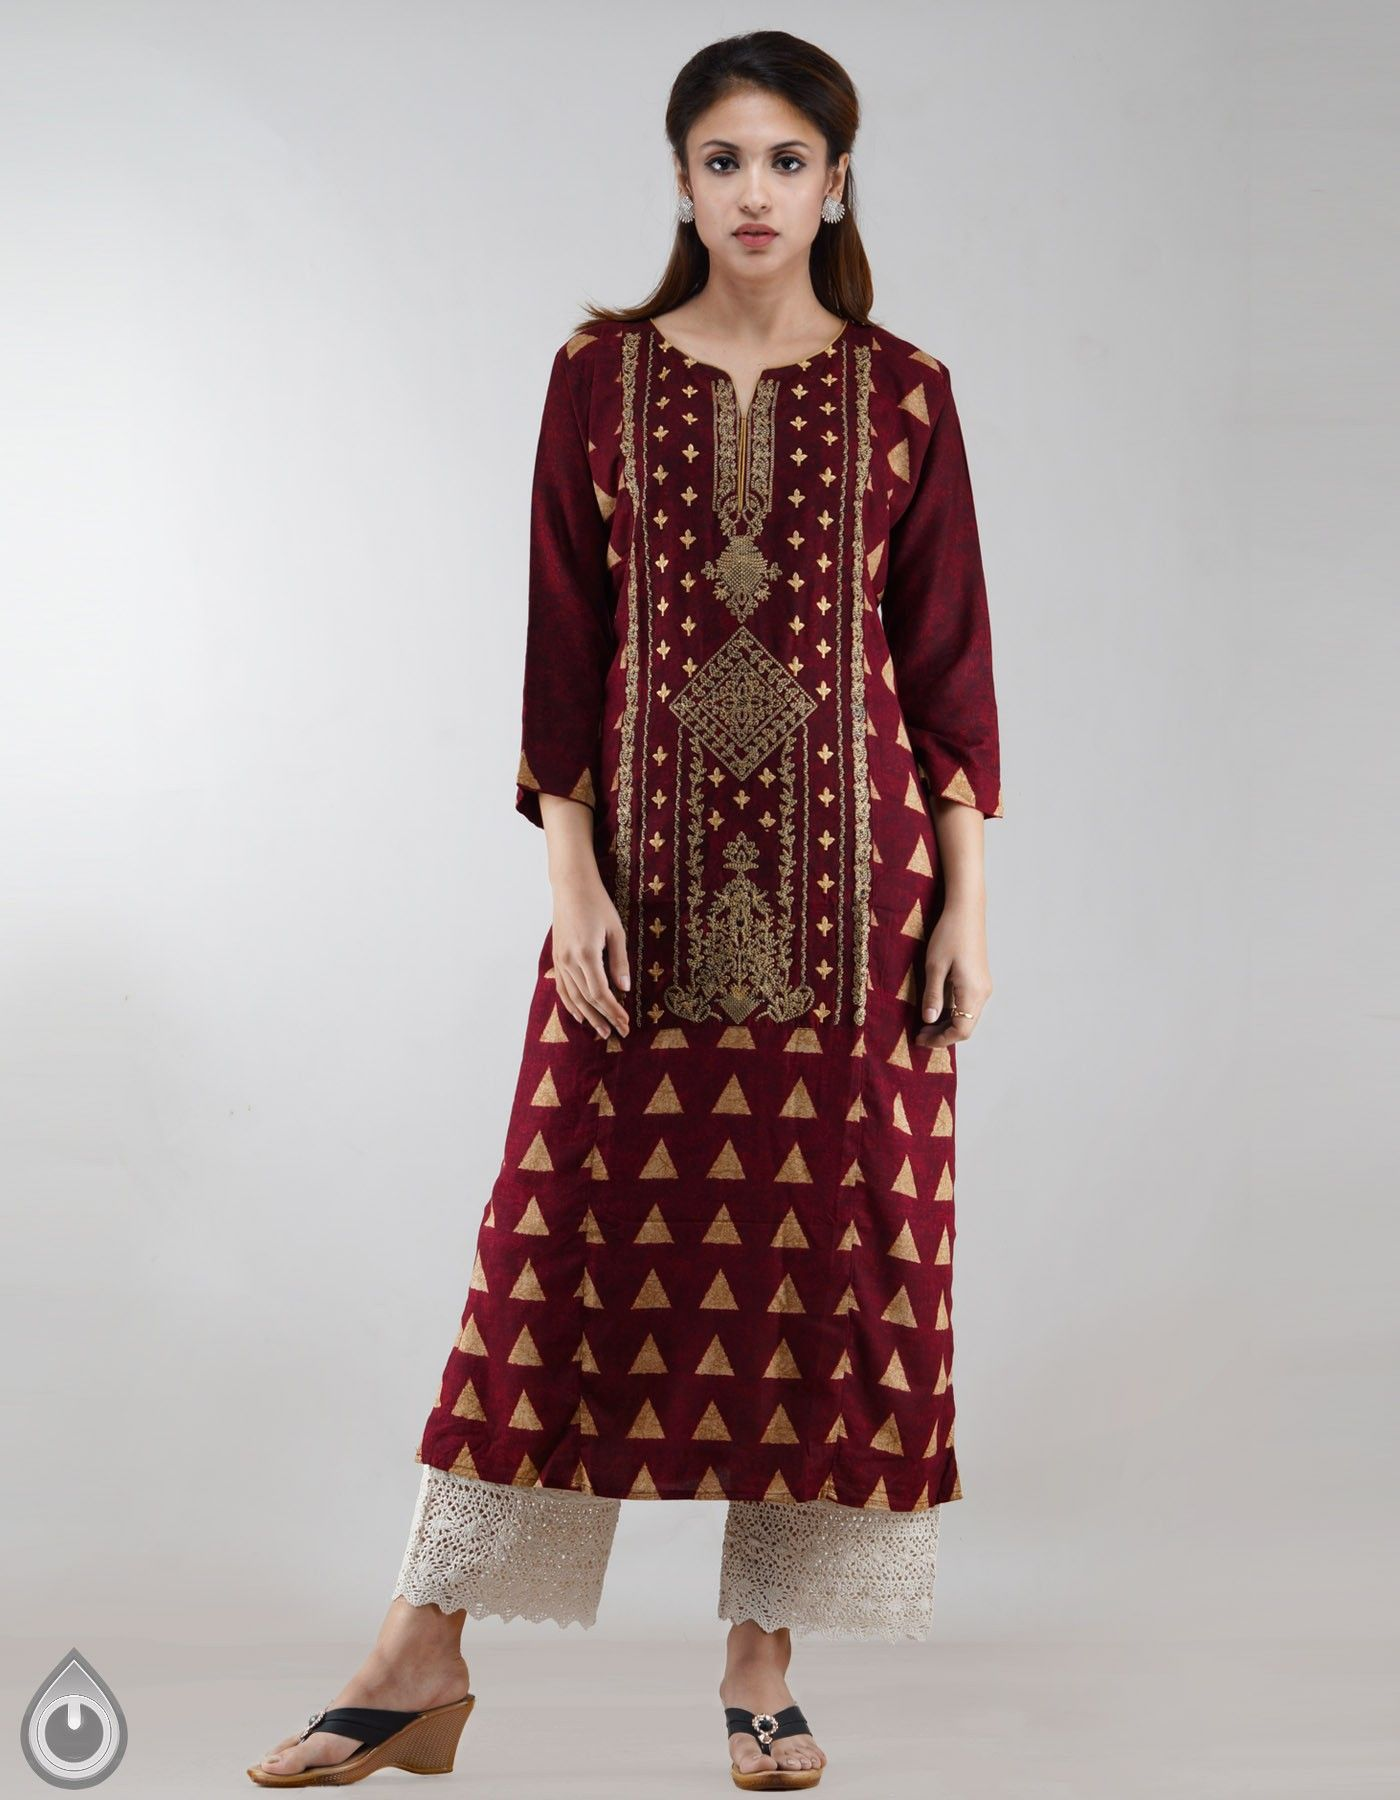 d6ac8823c3 Maroon Pure Rayon Cotton A-Line Kurta,It has cream floral embroidery work  with boat neck and 3/4th sleeves,Product Color:Maroon,Craft Type:  Embroidery Work ...